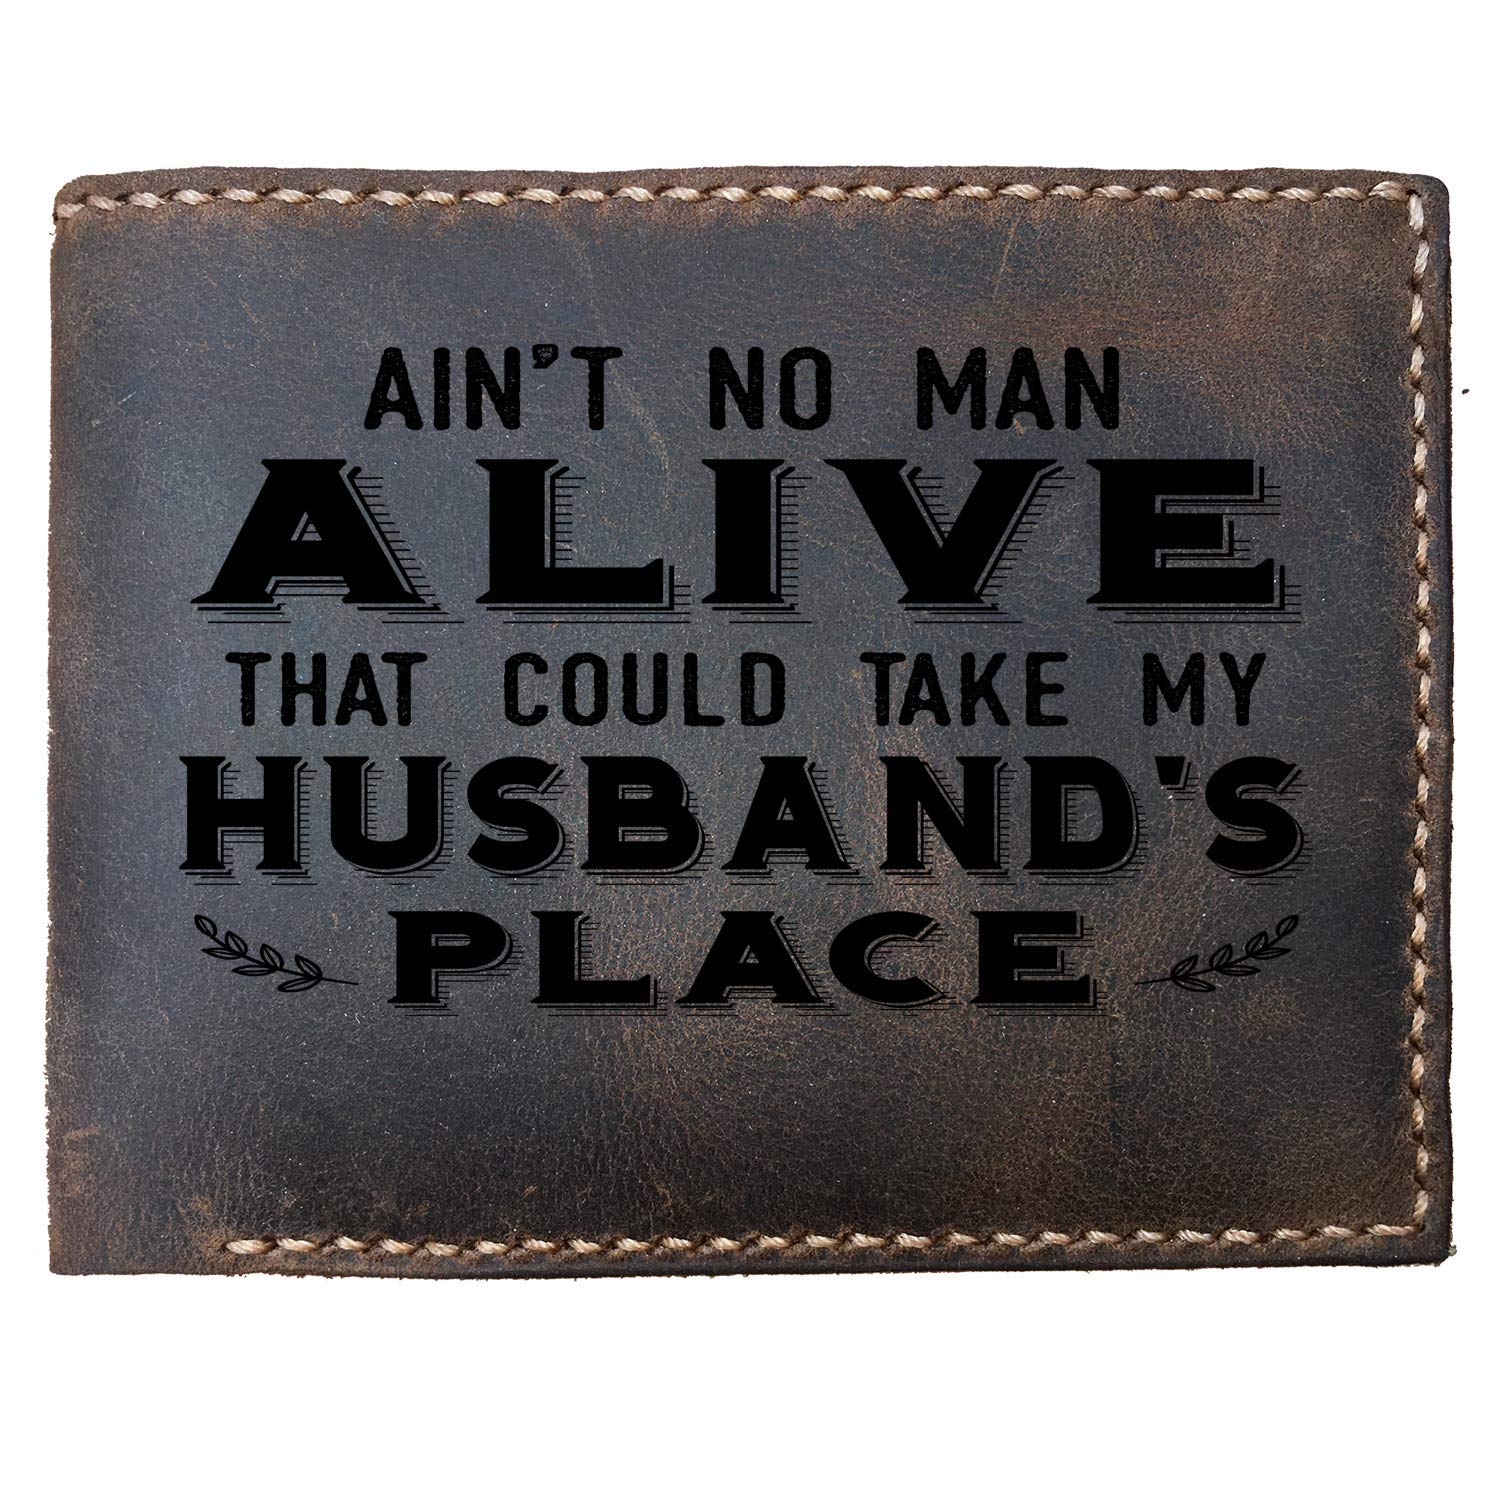 StenchSword Best Aint No Man Could Take My Husbands Place Custom Laser Engraved Leather Bifold Wallet for Men Gifts